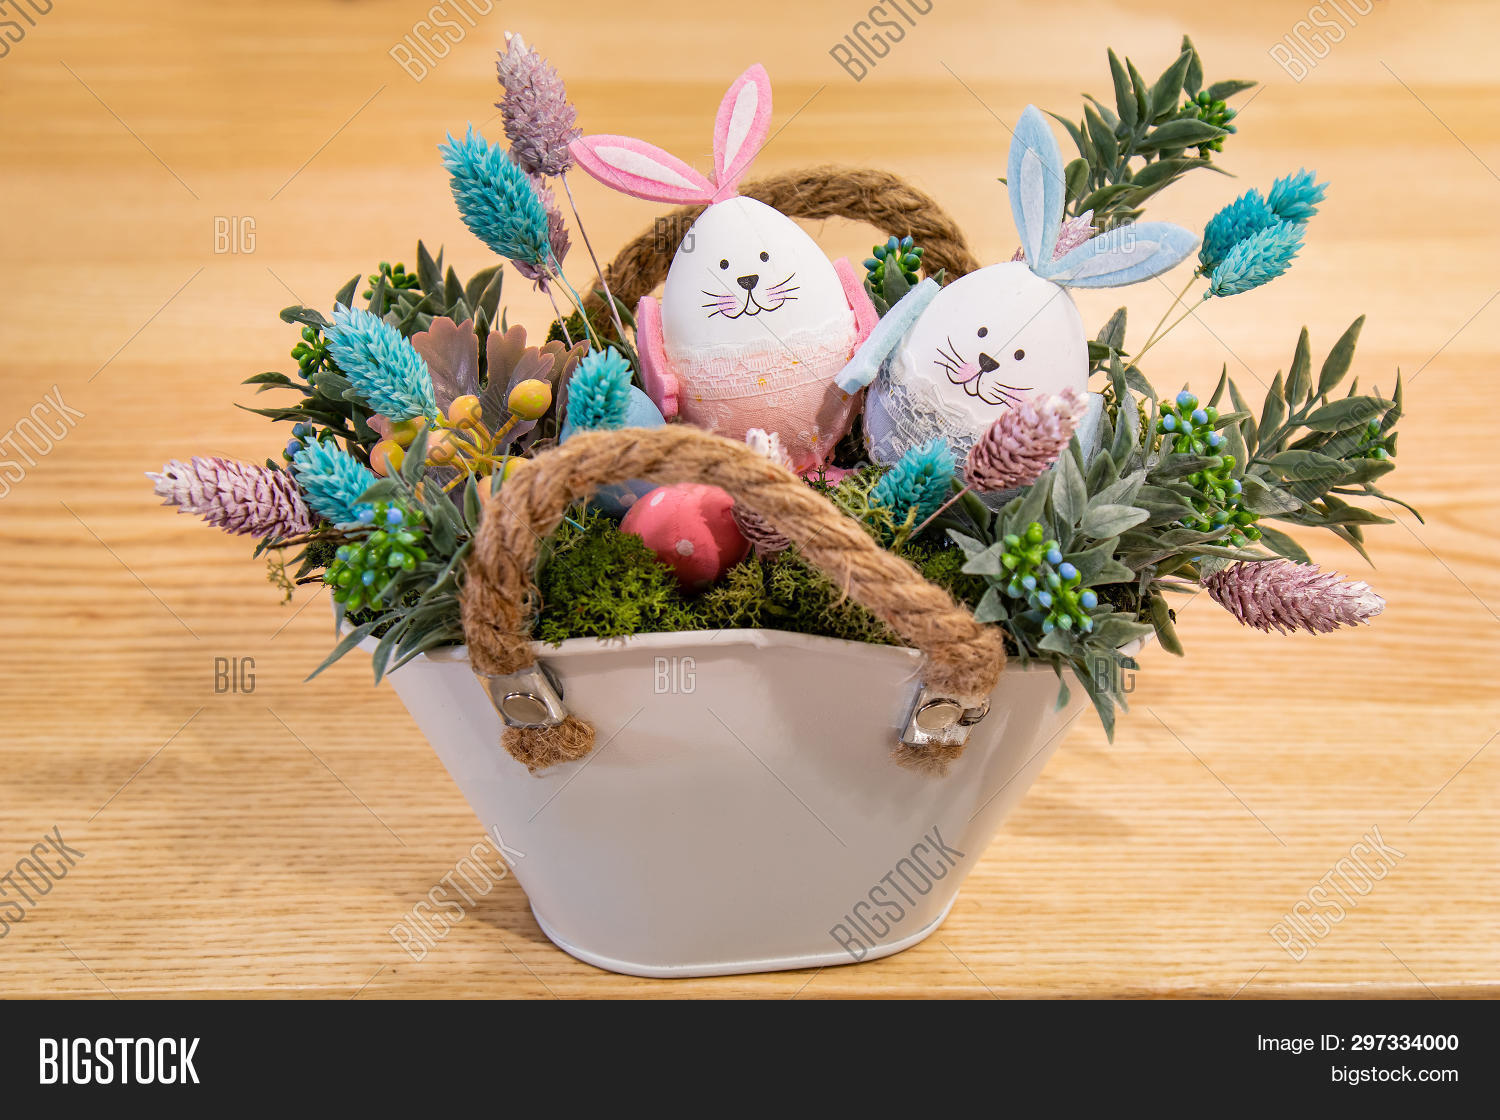 Funny Easter Eggs Cute Image Photo Free Trial Bigstock